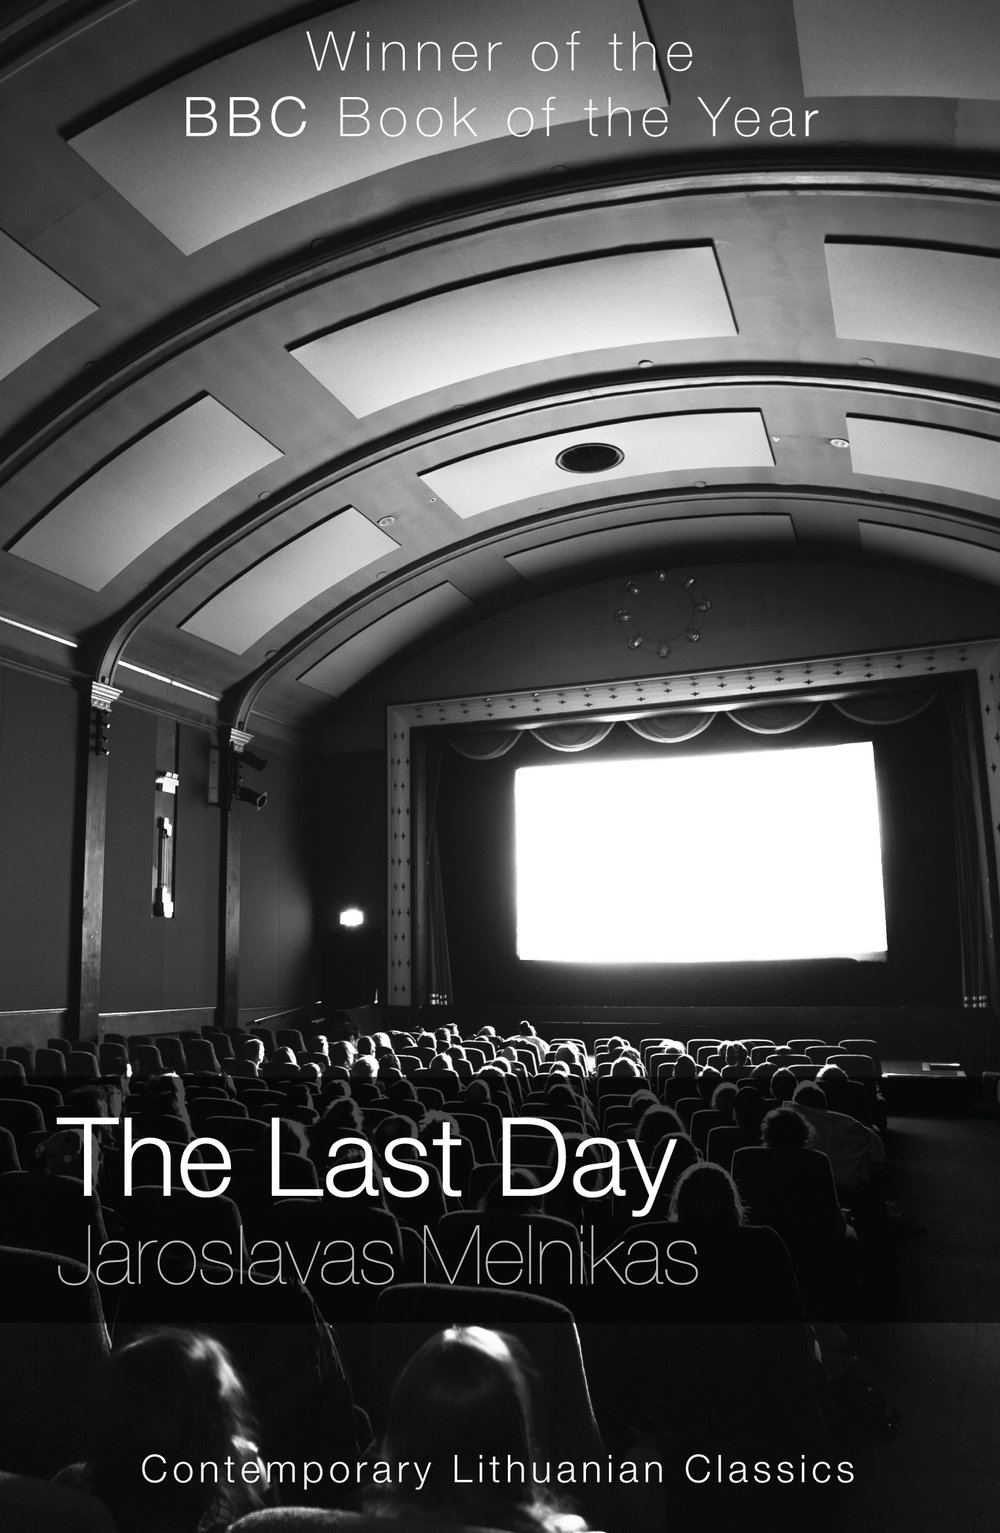 The Last Day  - Out July 1st 2018Winner of BBC Book of the YearJura finds that the favourite rooms in his house, each designed to reflect an aspect of his personality, are disappearing one by one. He remembers perfectly well playing the piano in 'The Grand Piano Room'. However, the other members of his family deny the room ever existed.A man publishes a book listing the dates that everybody in the world will die. A family counts down the days to the death-date of their son.An architect receives letters from God giving him choices which throw him into a moral dilemma.In this award-winning collection of stories, 'Melnikas questions the taboos that limit human freedom.' Lire